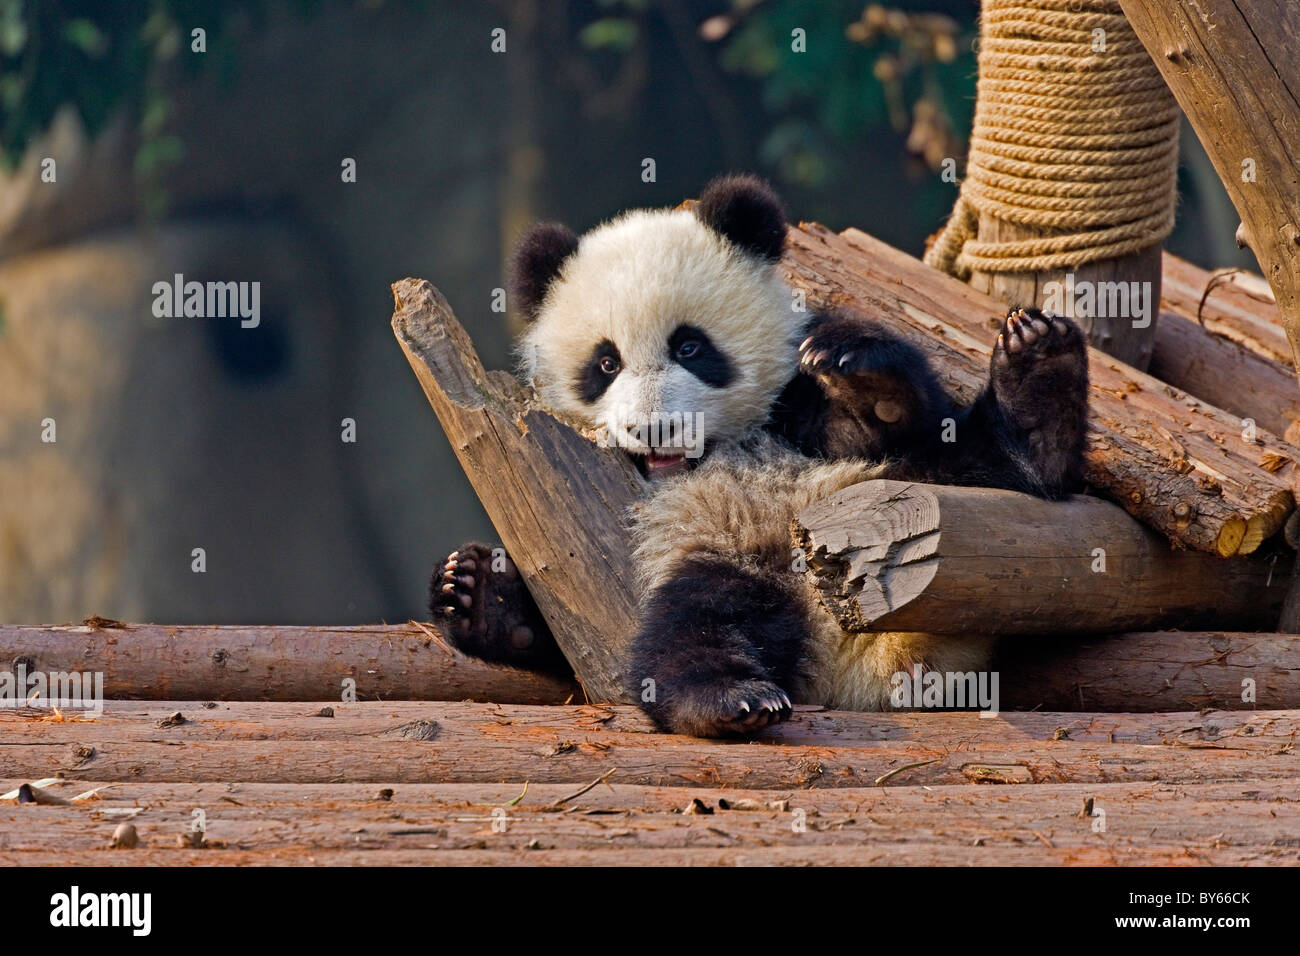 Young Giant Panda cub at Chengdu Research Base of Giant Panda Breeding, China. JMH4379 - Stock Image